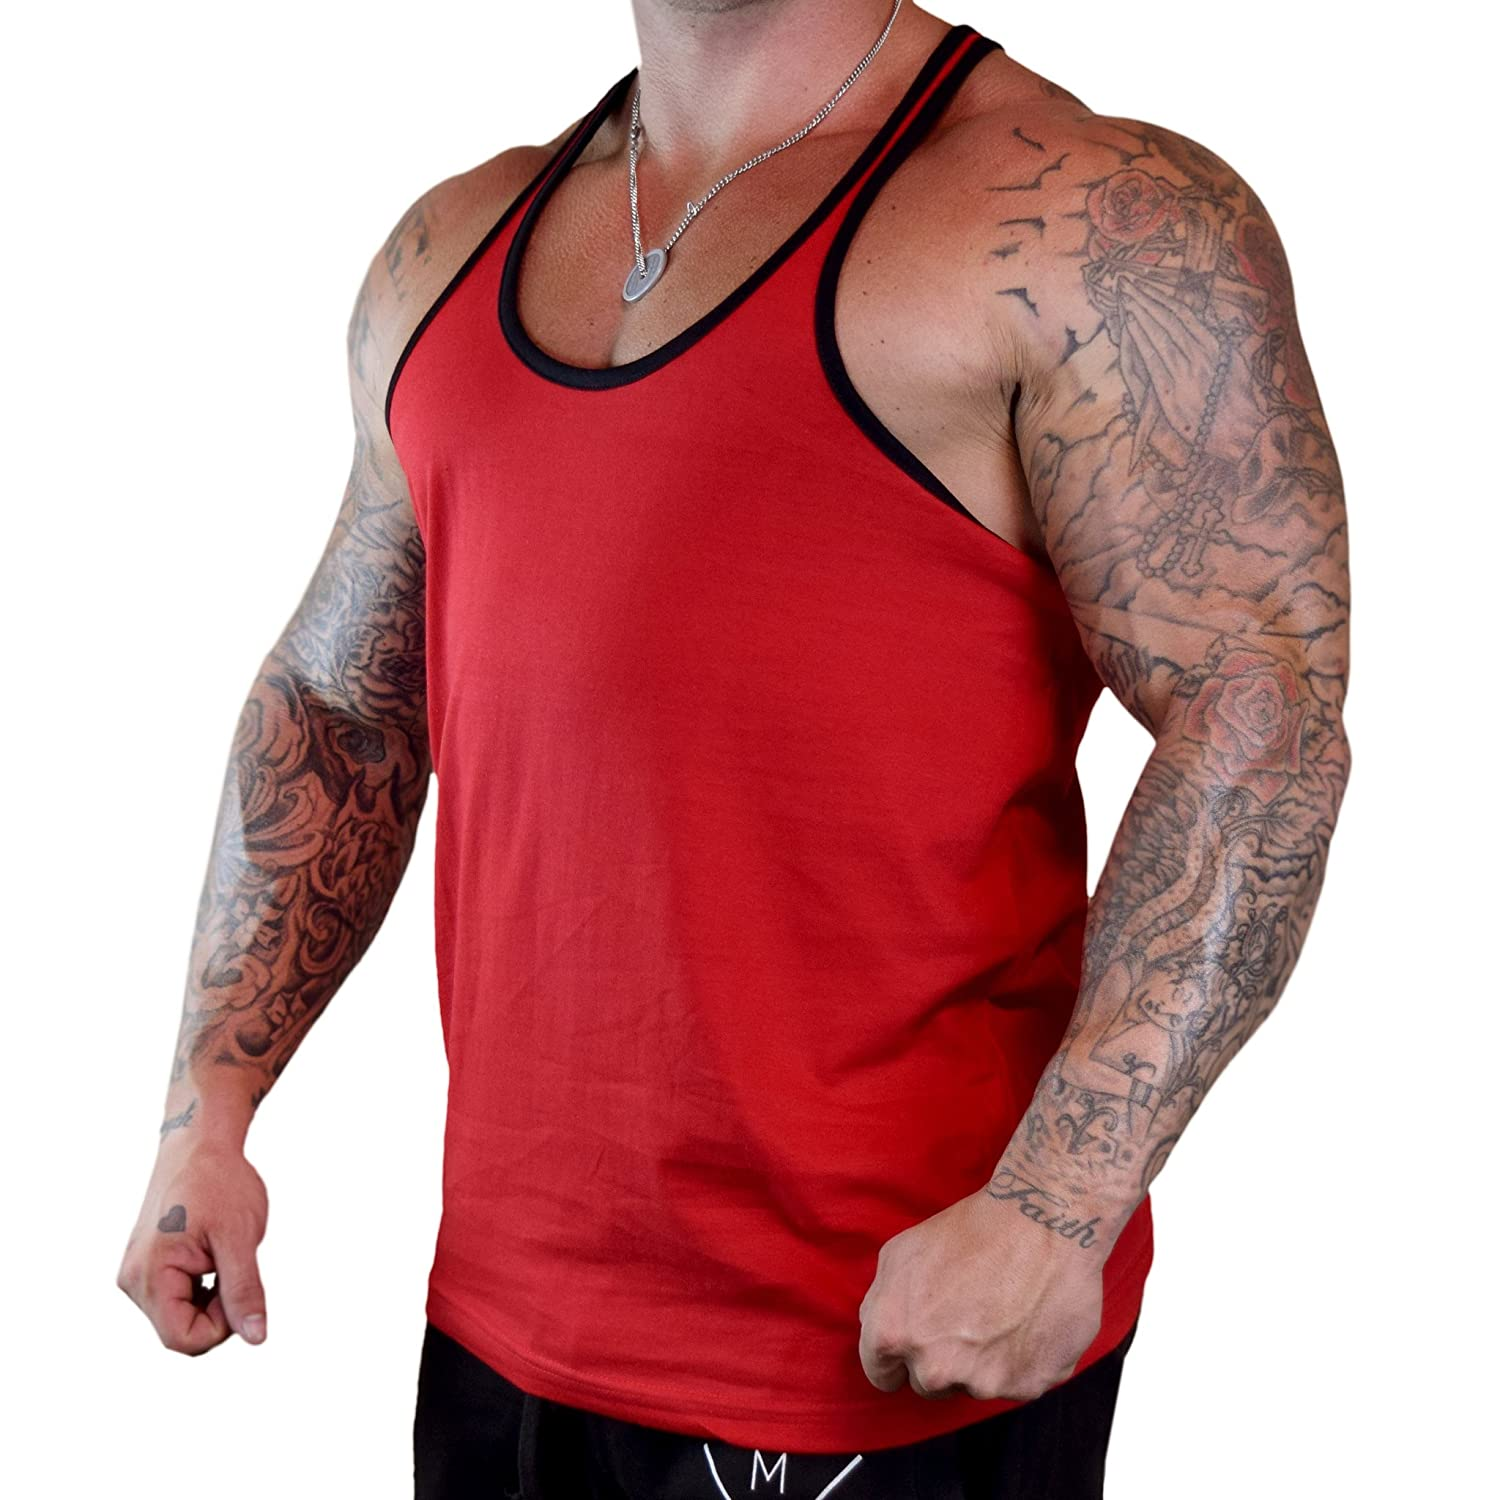 Mens Sore Good V446 Tee Red Stringer Tank Top